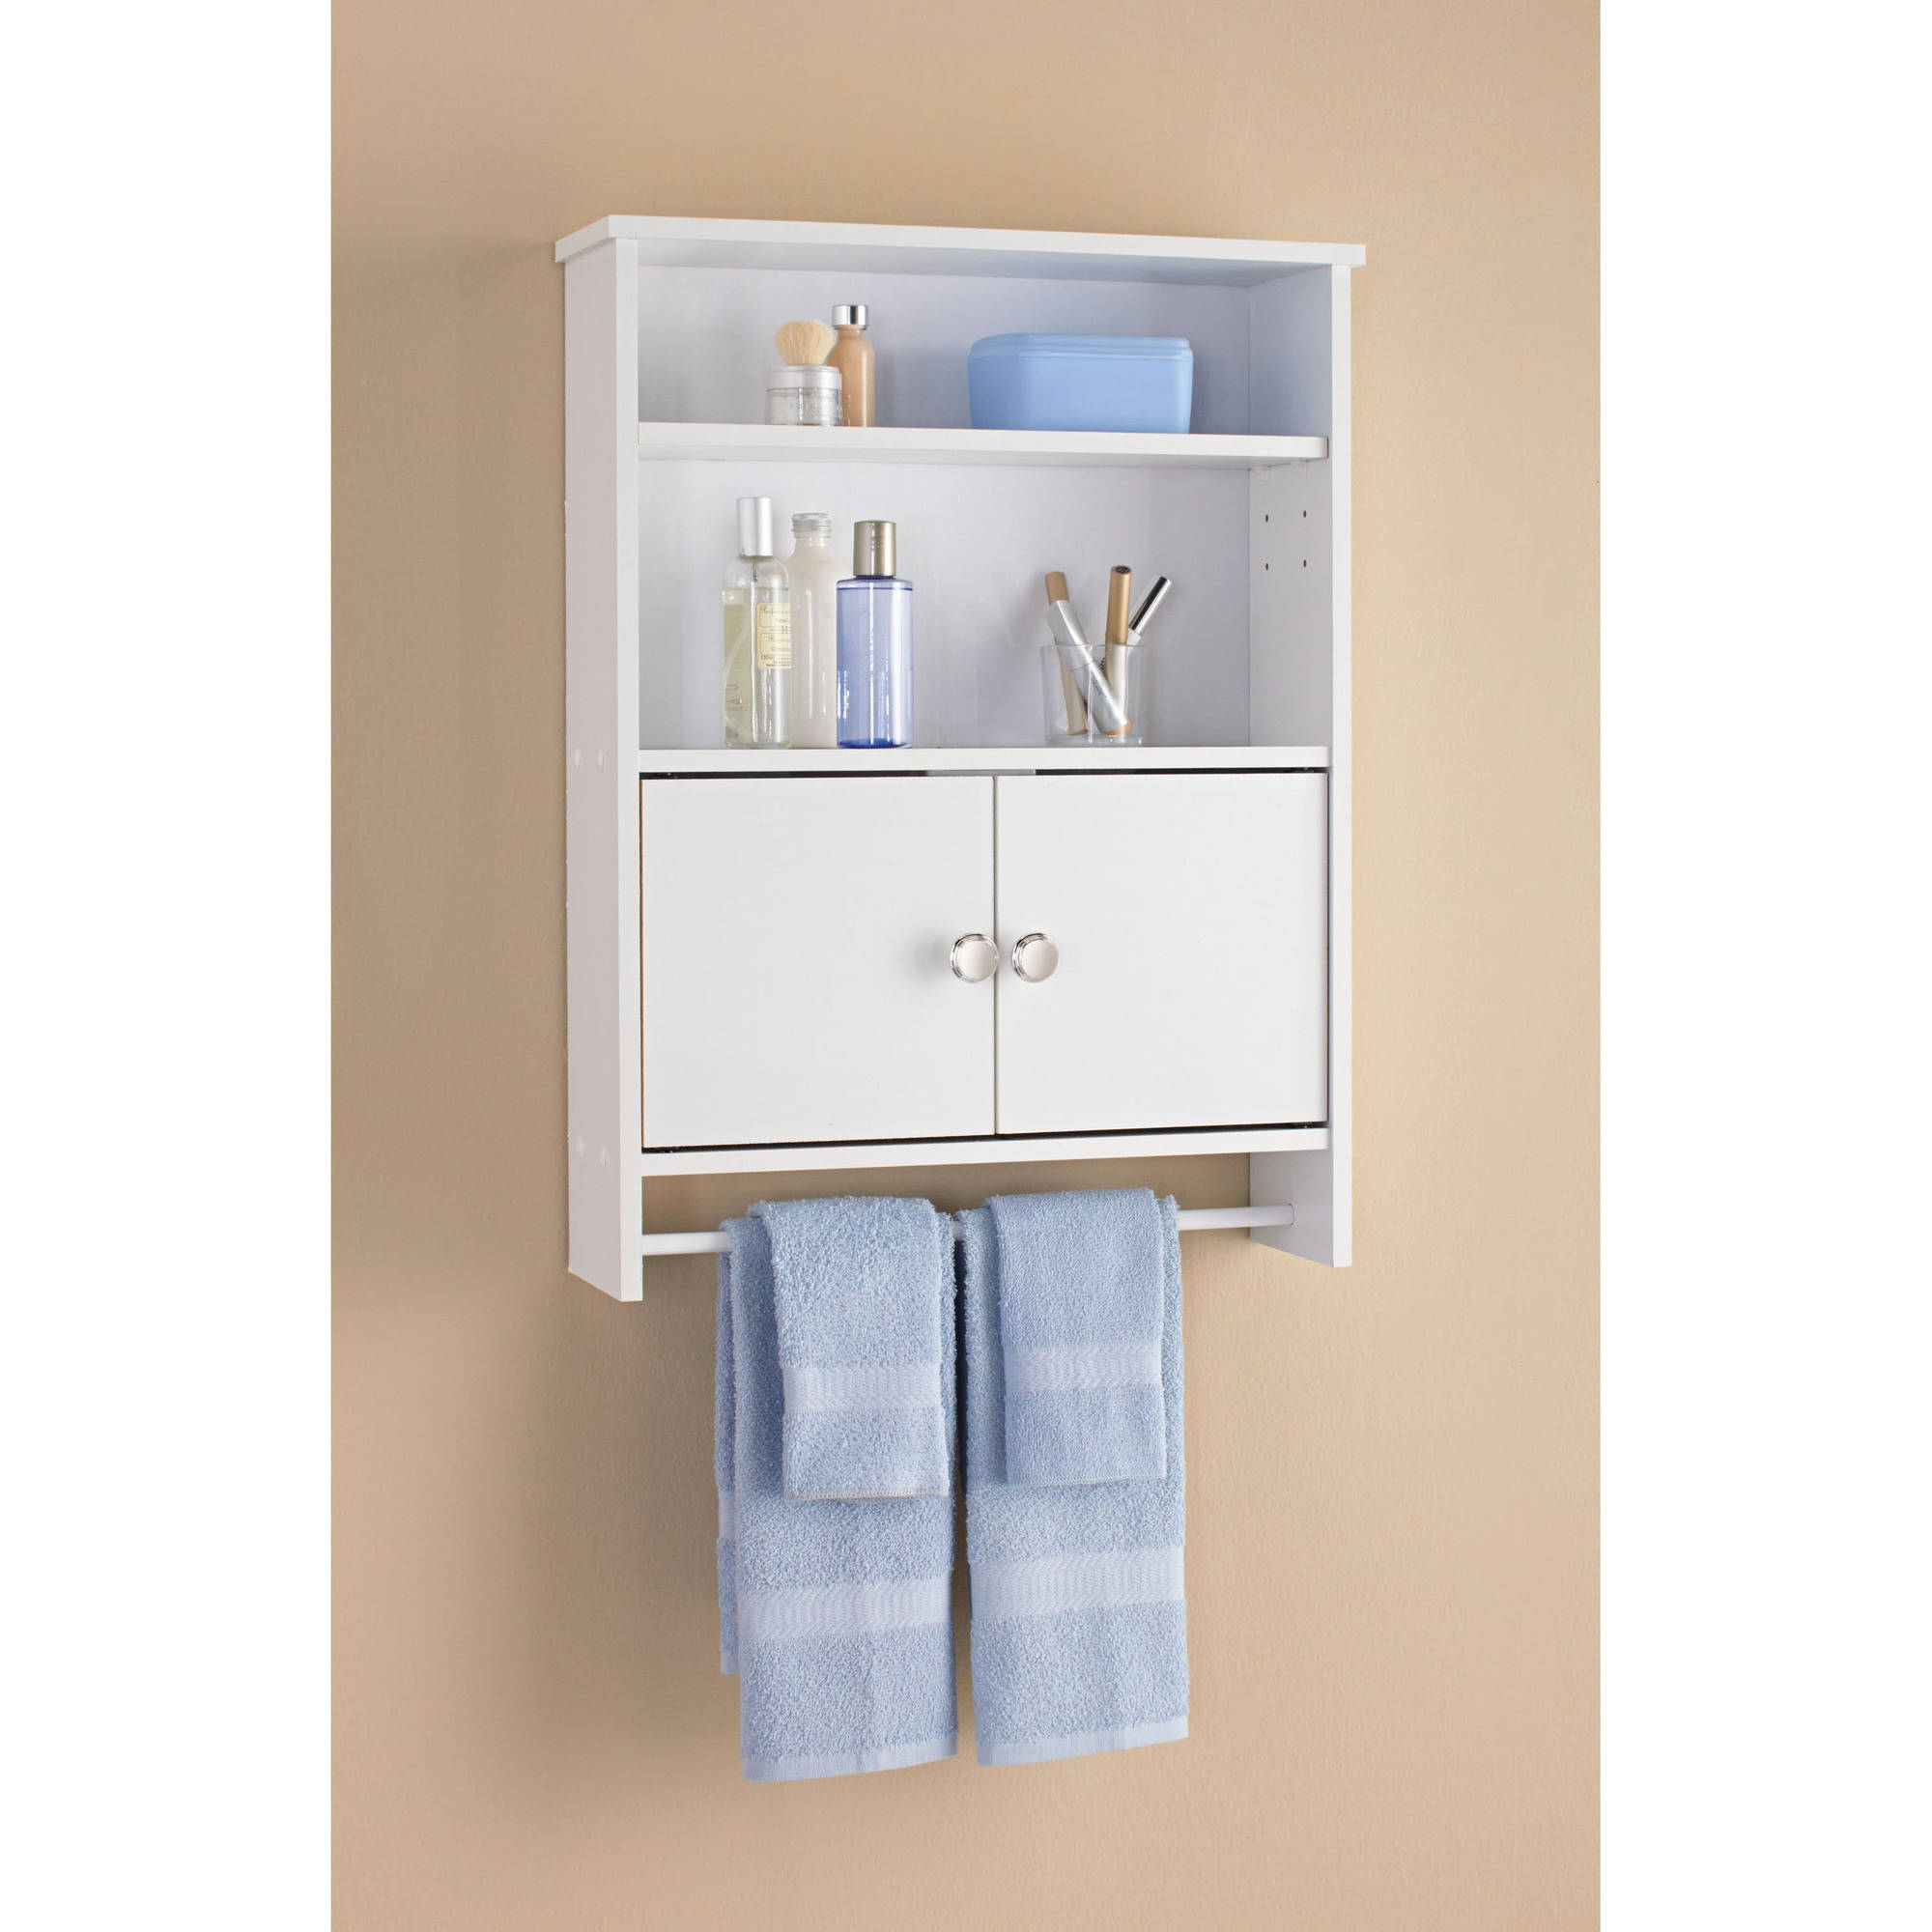 Wall Cabinets For Bathrooms Mainstays 2 Door Bathroom Wall Cabinet White